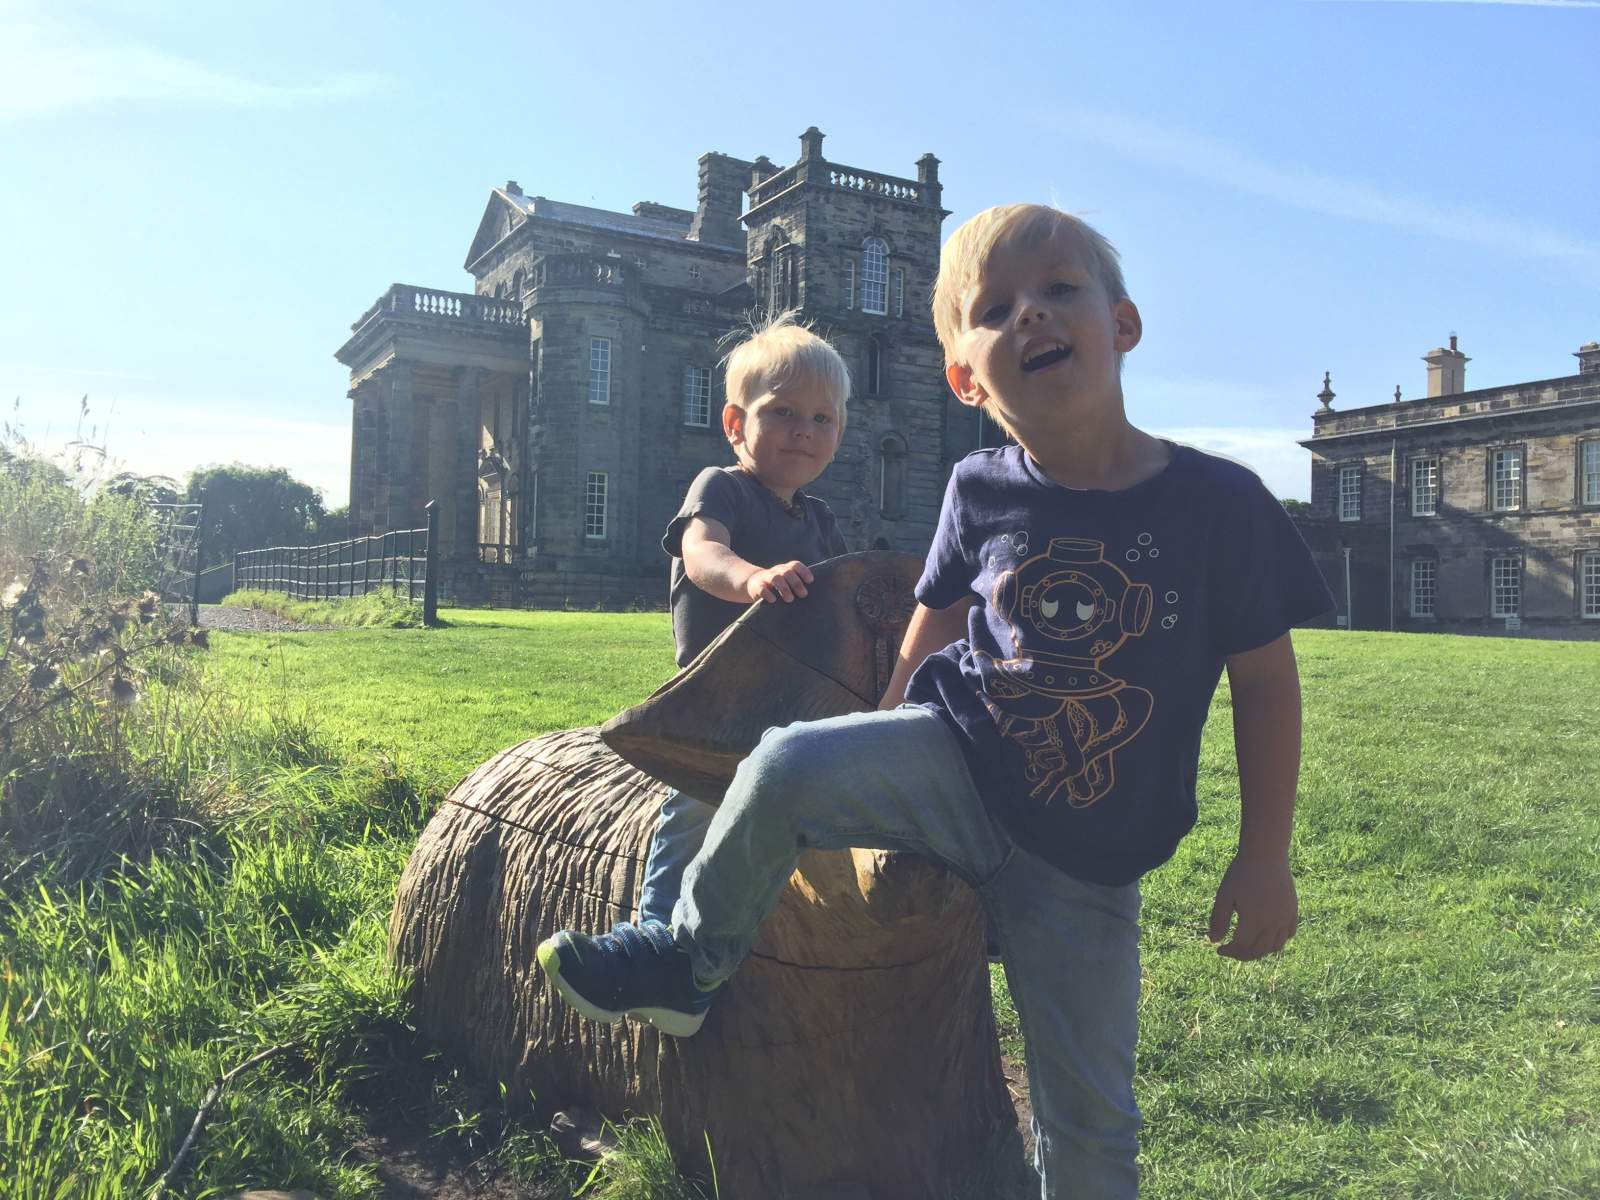 riding on a wooden sheep at seaton delaval hall